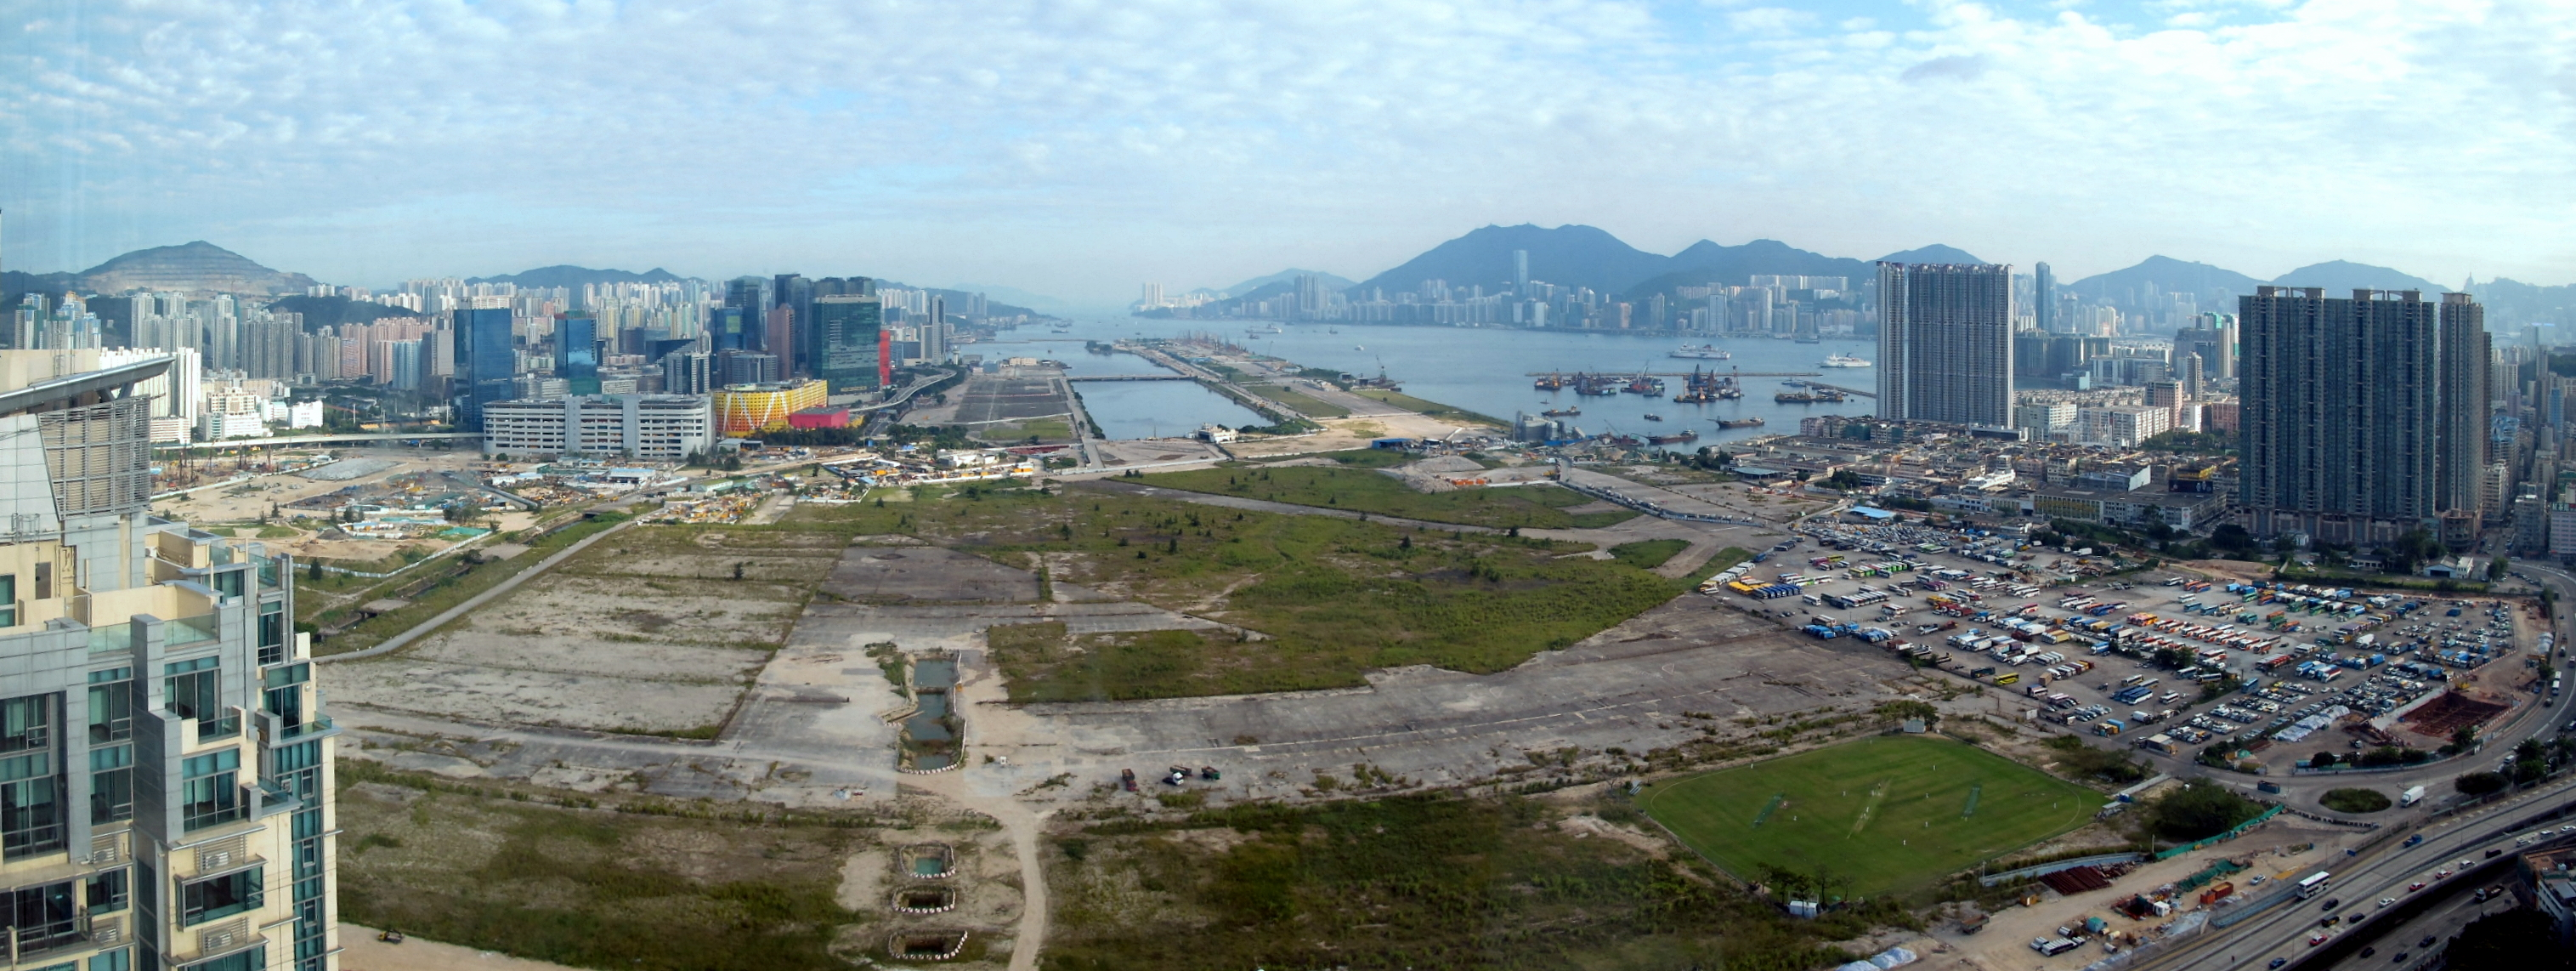 Aéroport international de Kai Tak, Hong Kong